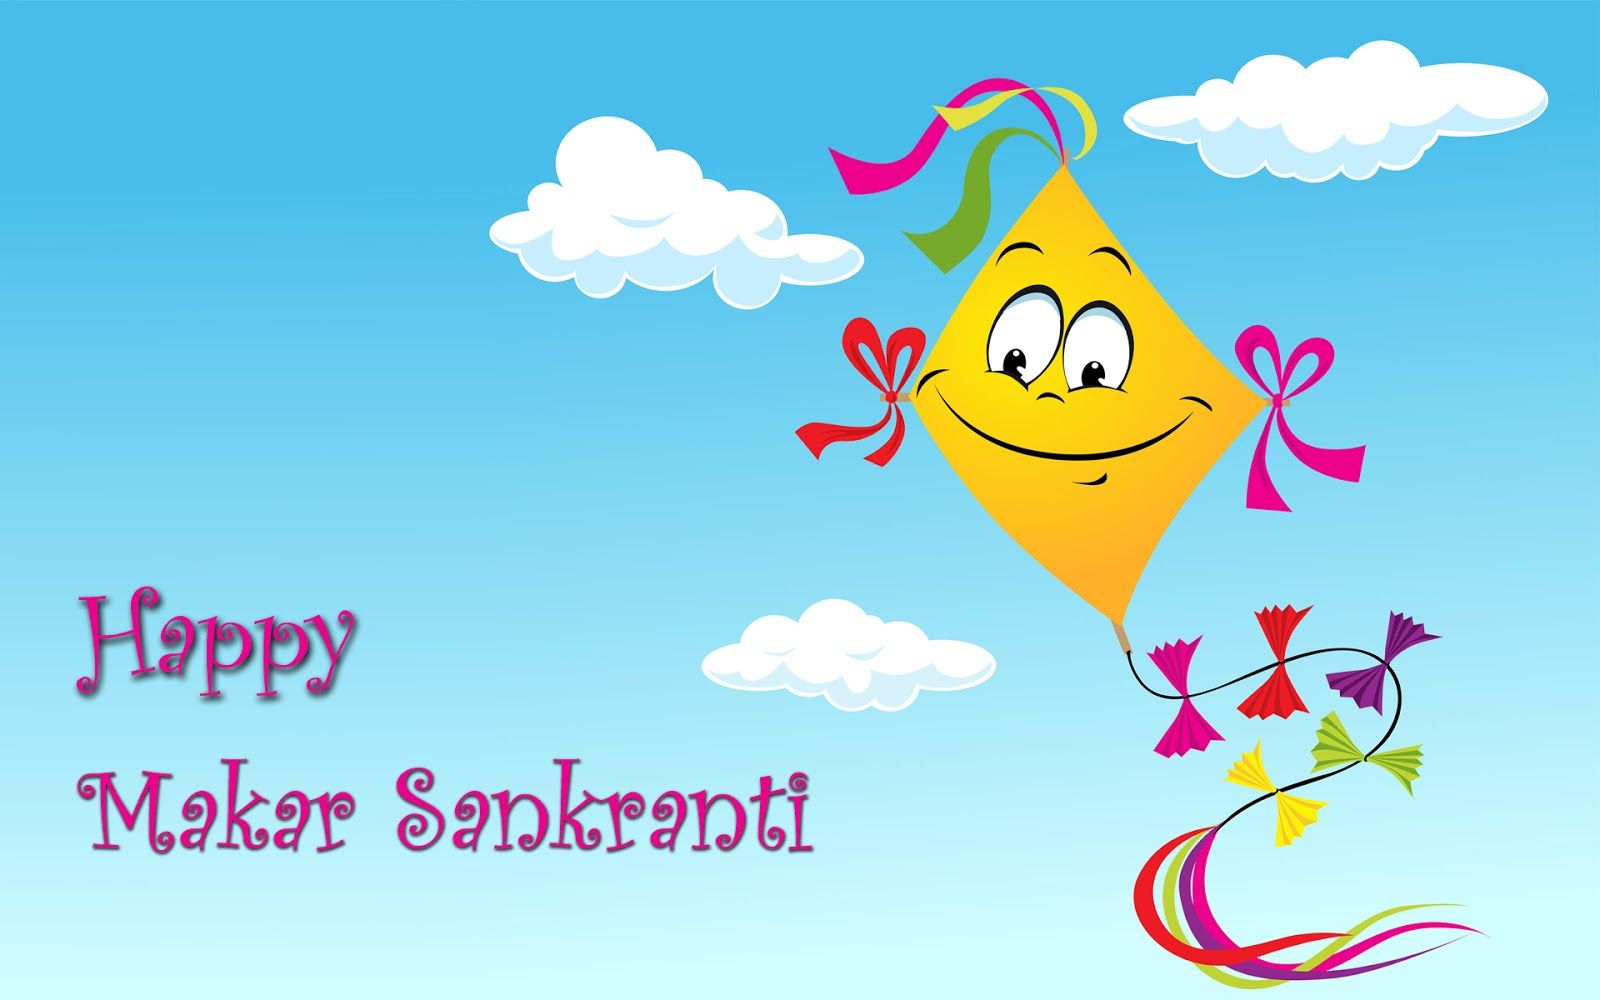 Happy Makar Sankranti Wallpapers 2017 Photos Pictures Images For